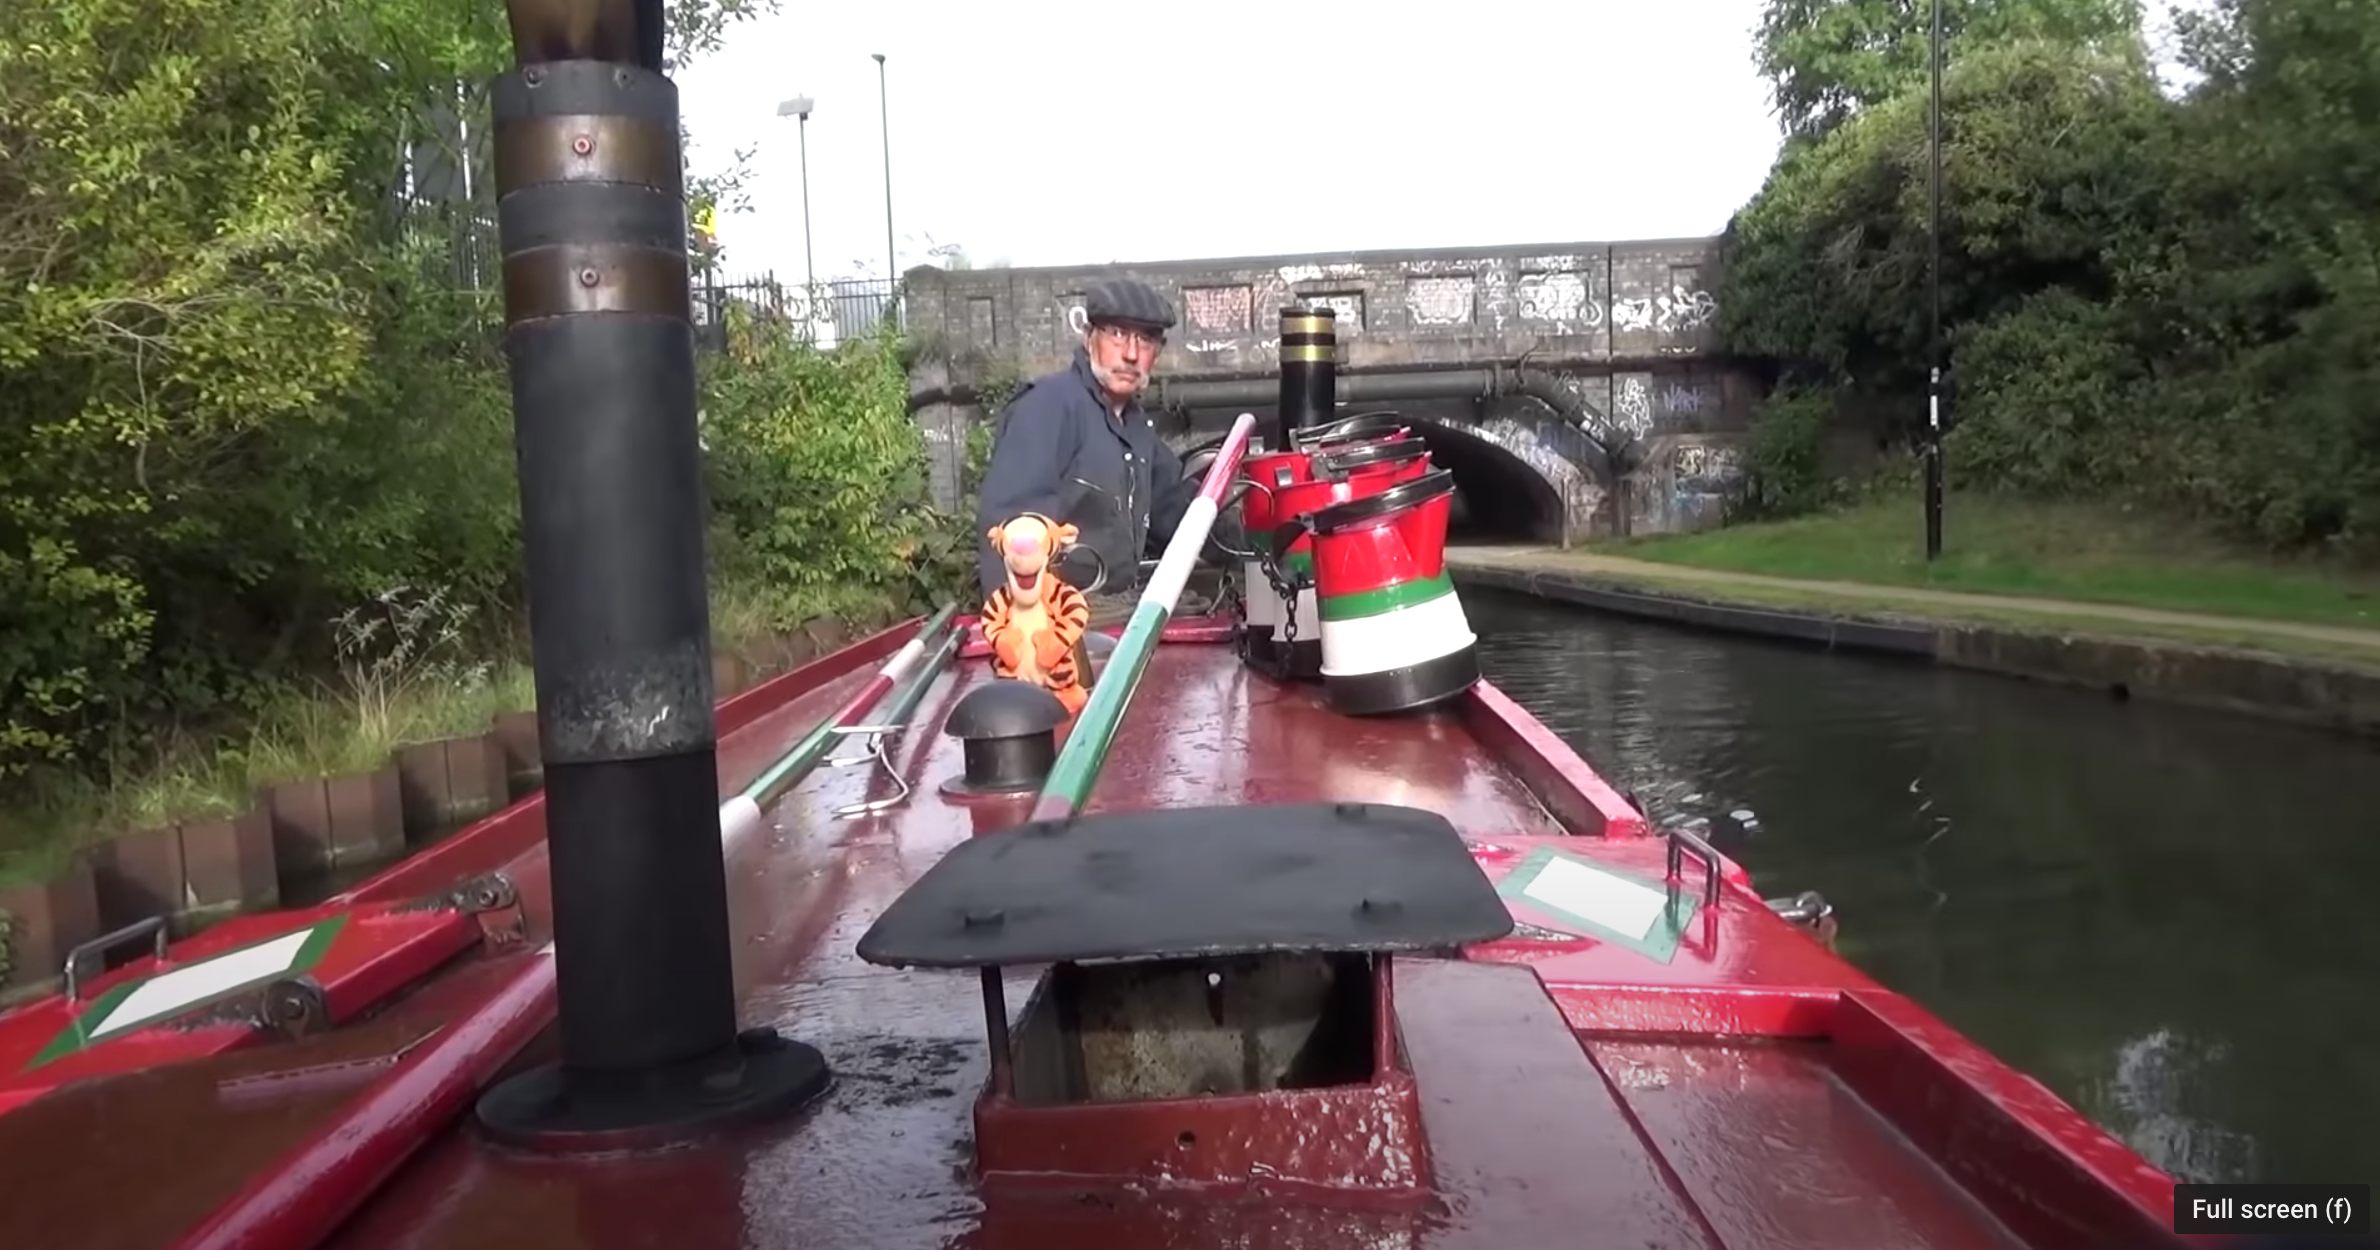 A man taking his red boat out on the canal, heading towards the bridge. An image from Alan Van Wijgerden's film titled, 'Coal, gas and diesel'